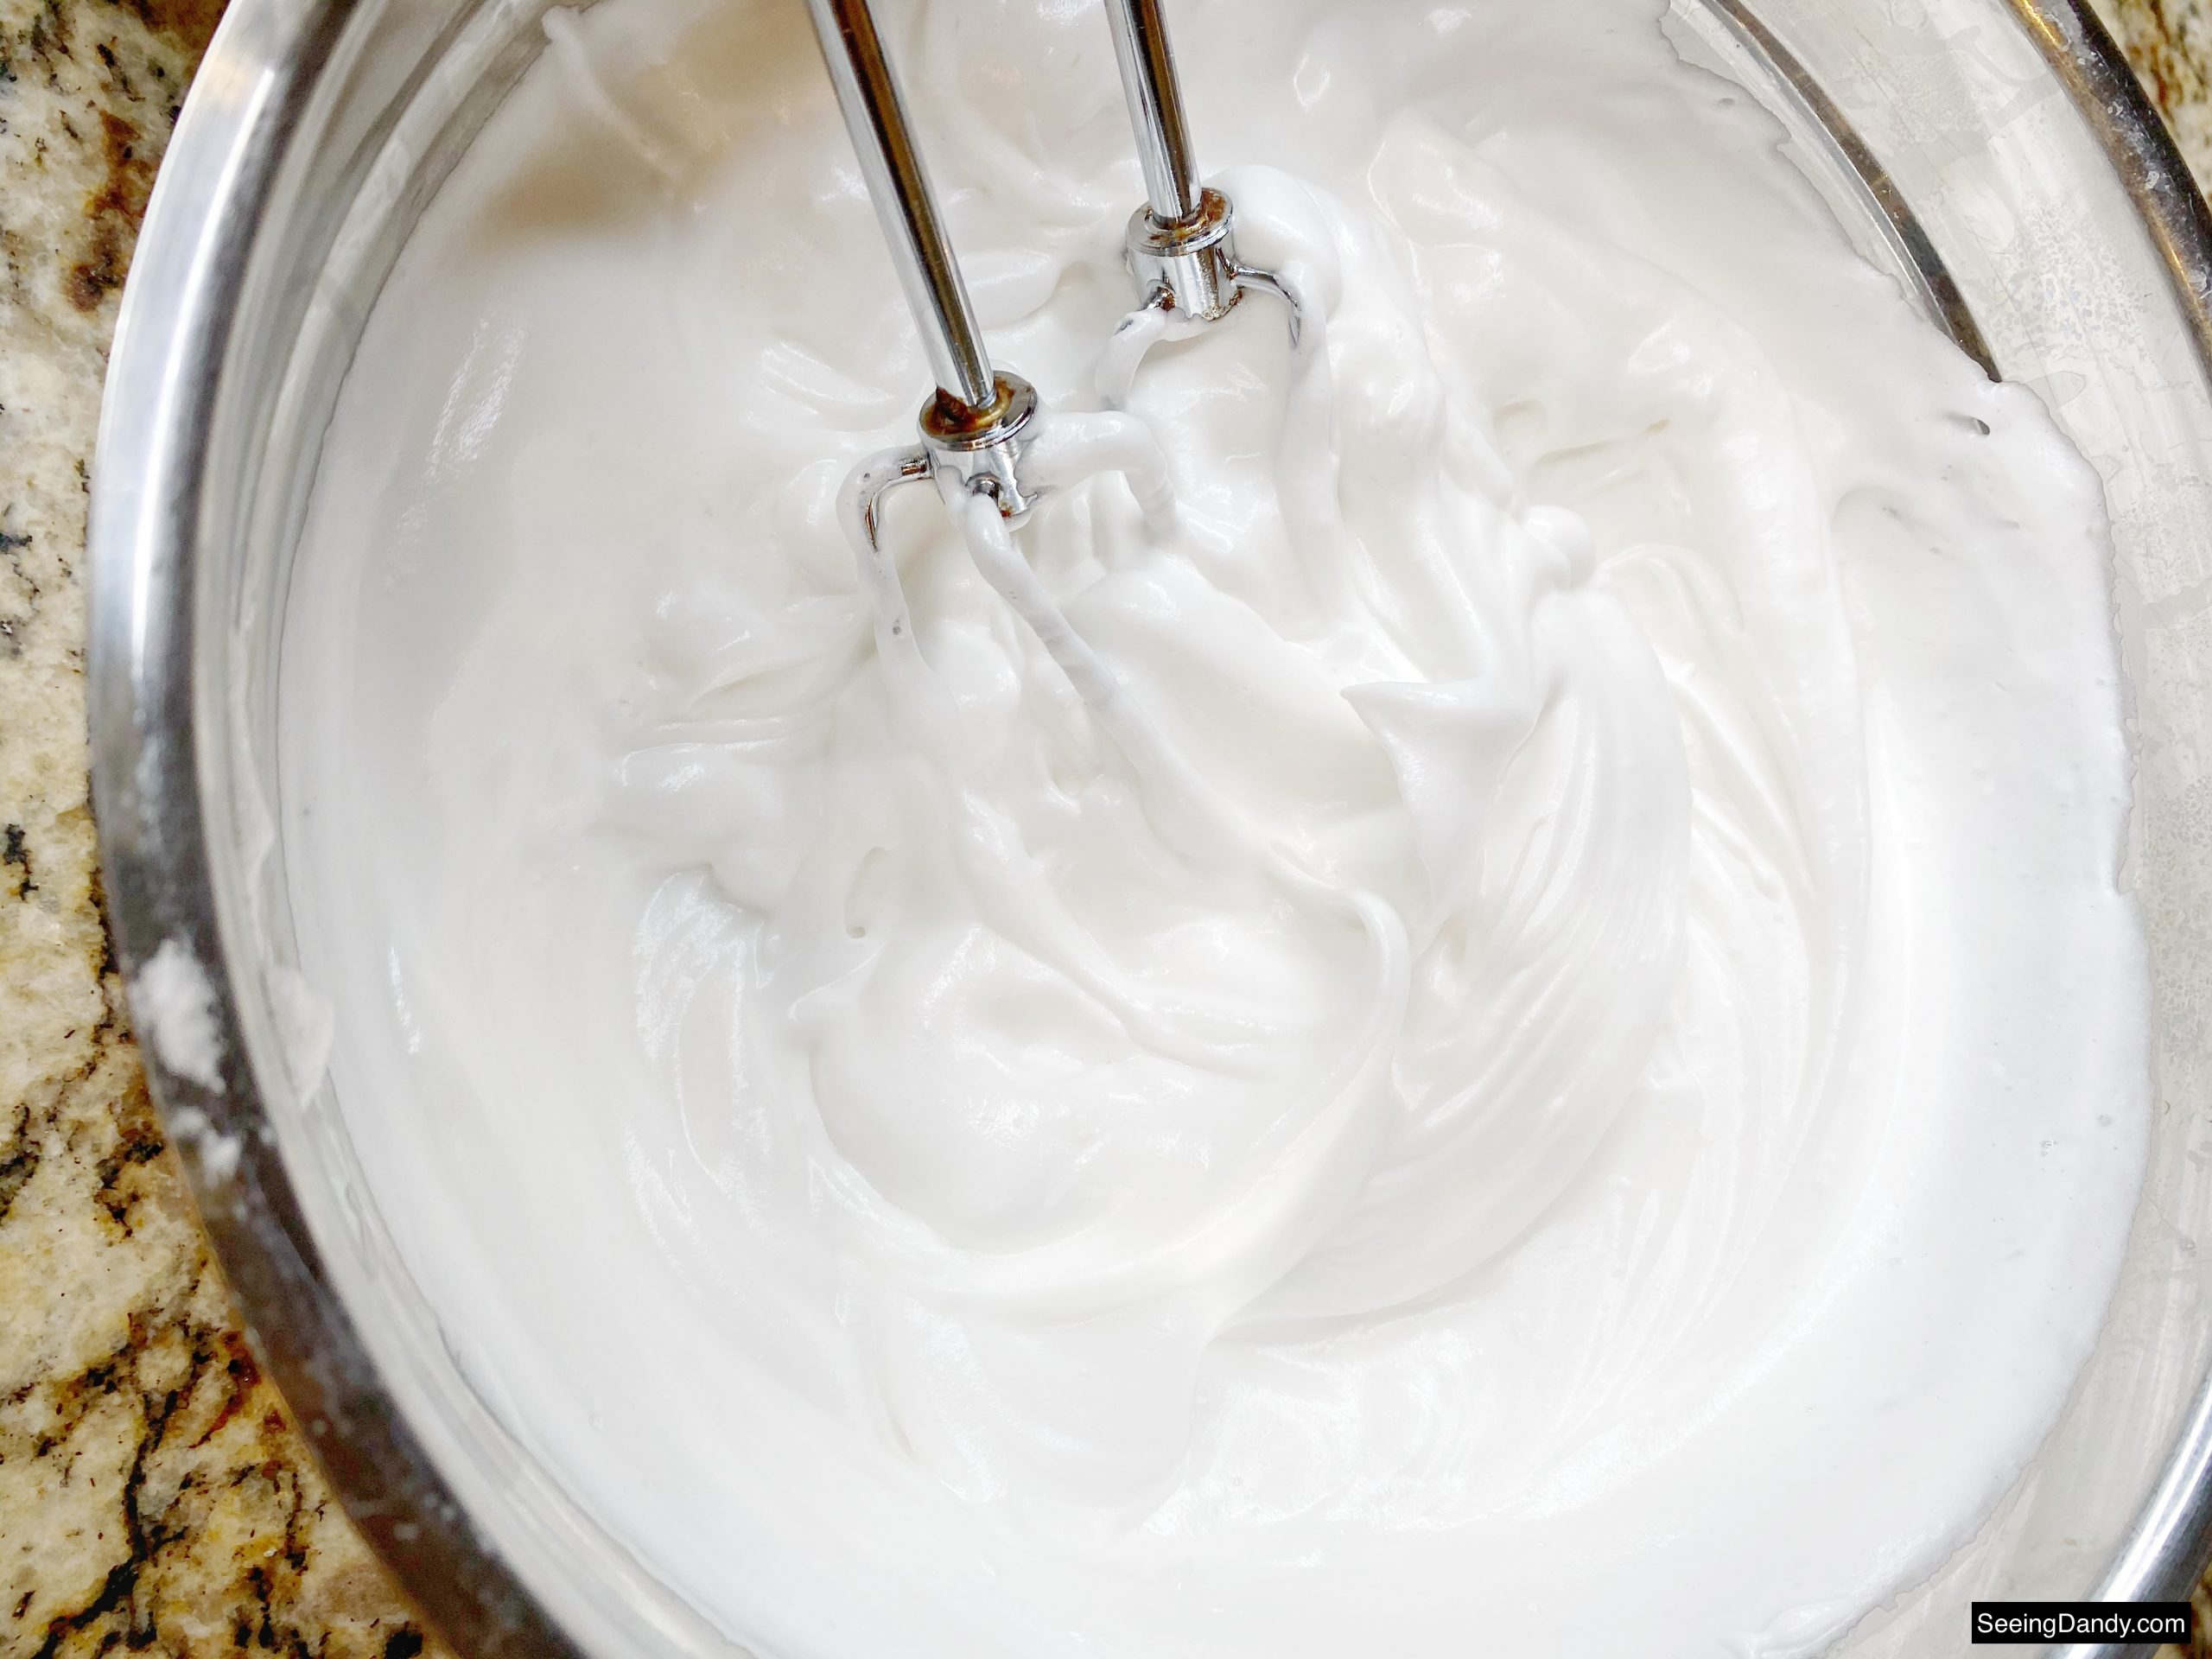 cream of tartar icing recipe, silver mixing bowl, mixer beaters, cupcake icing, granite countertop